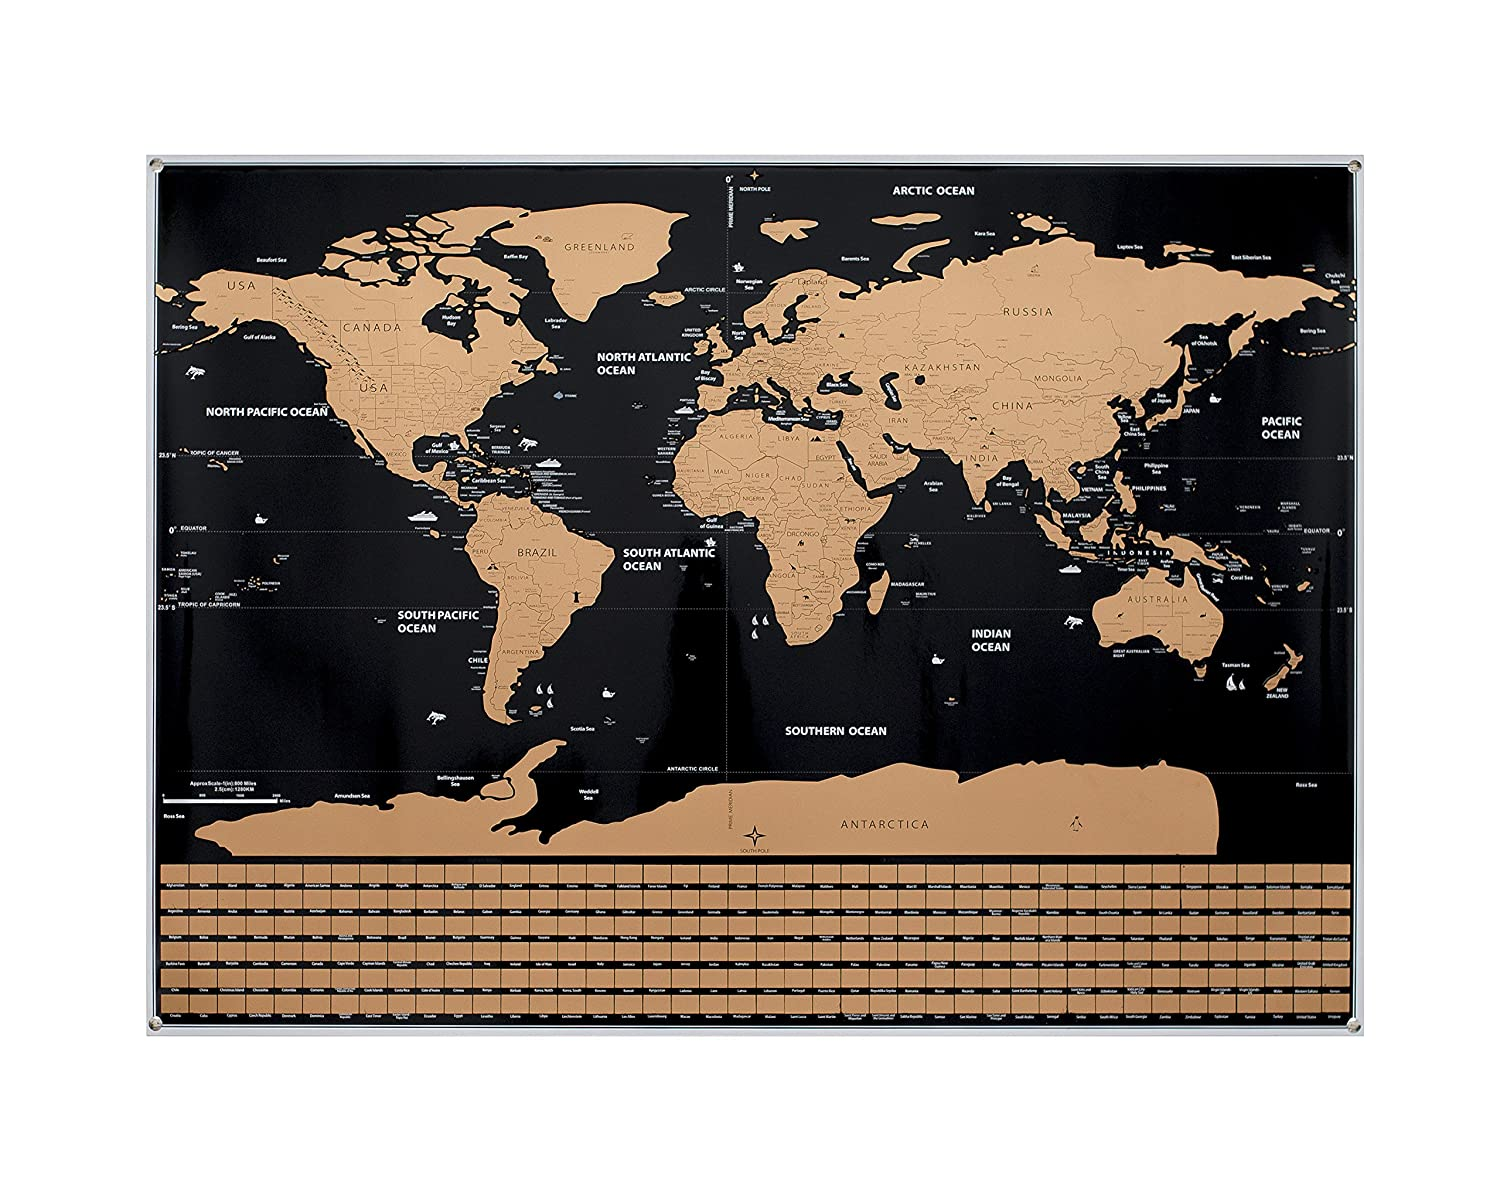 Amazoncom Scratch Off World Map World Countries And Us States - Us-map-with-countries